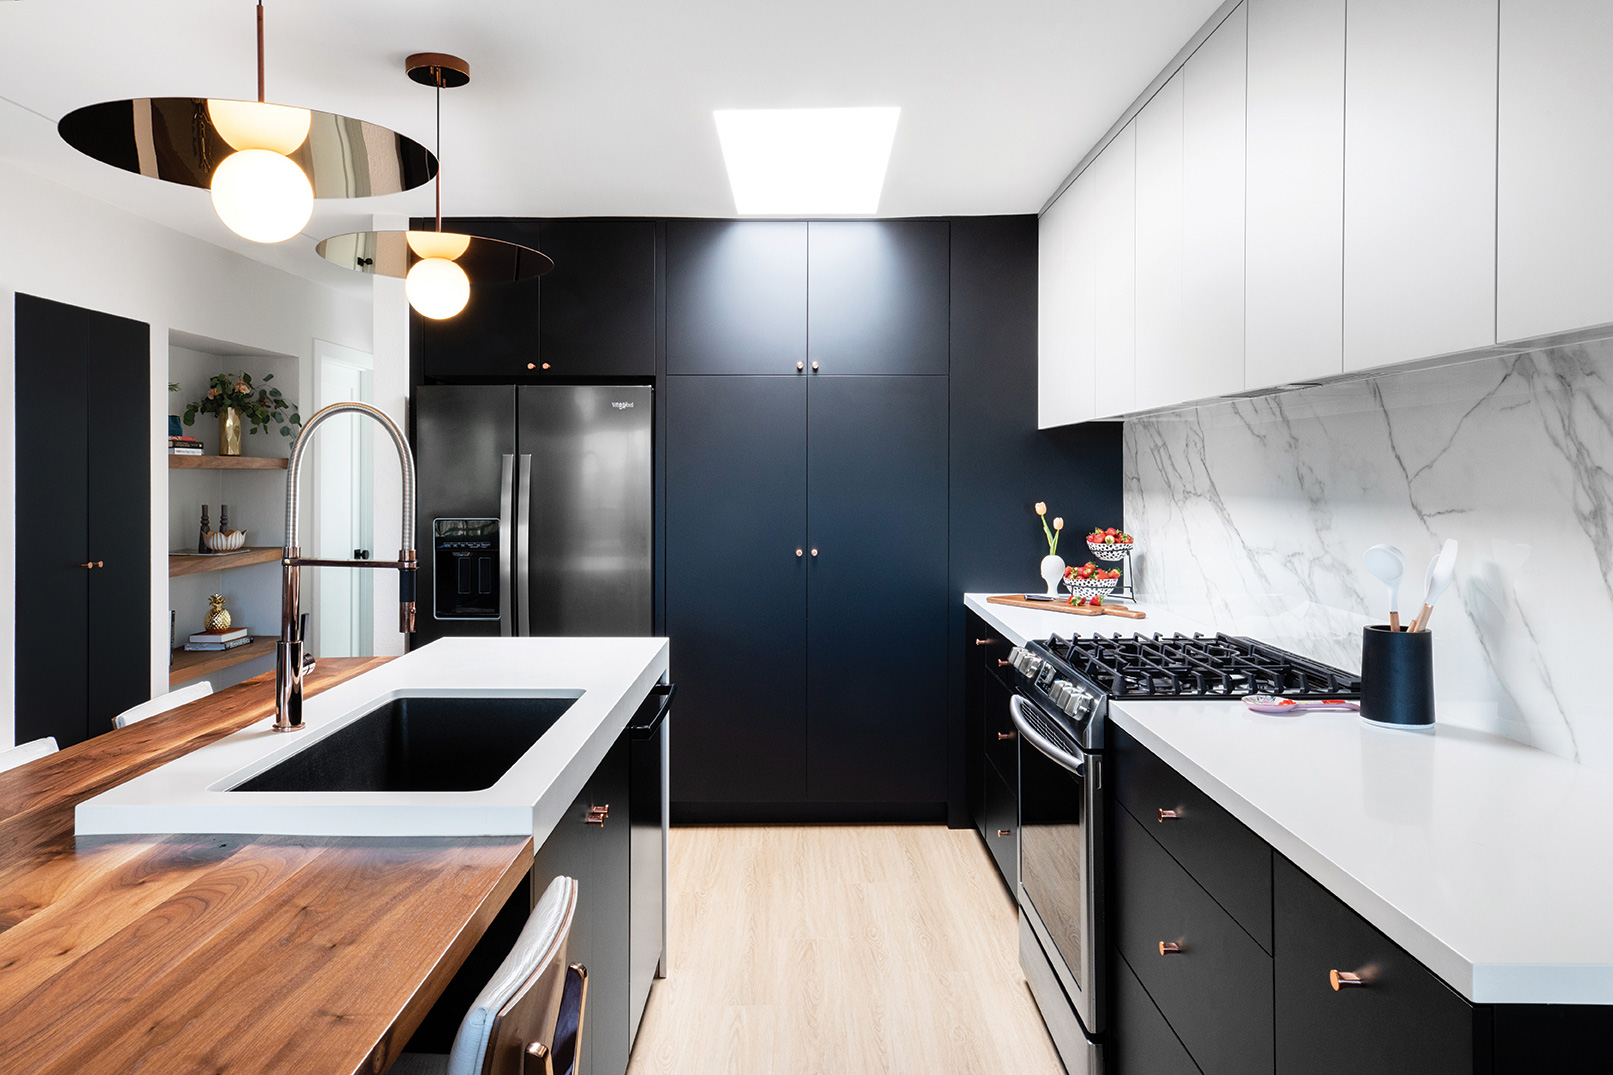 rose gold faucet rose gold pendant lights small kitchen kitchy crouse san diego black cabinetry